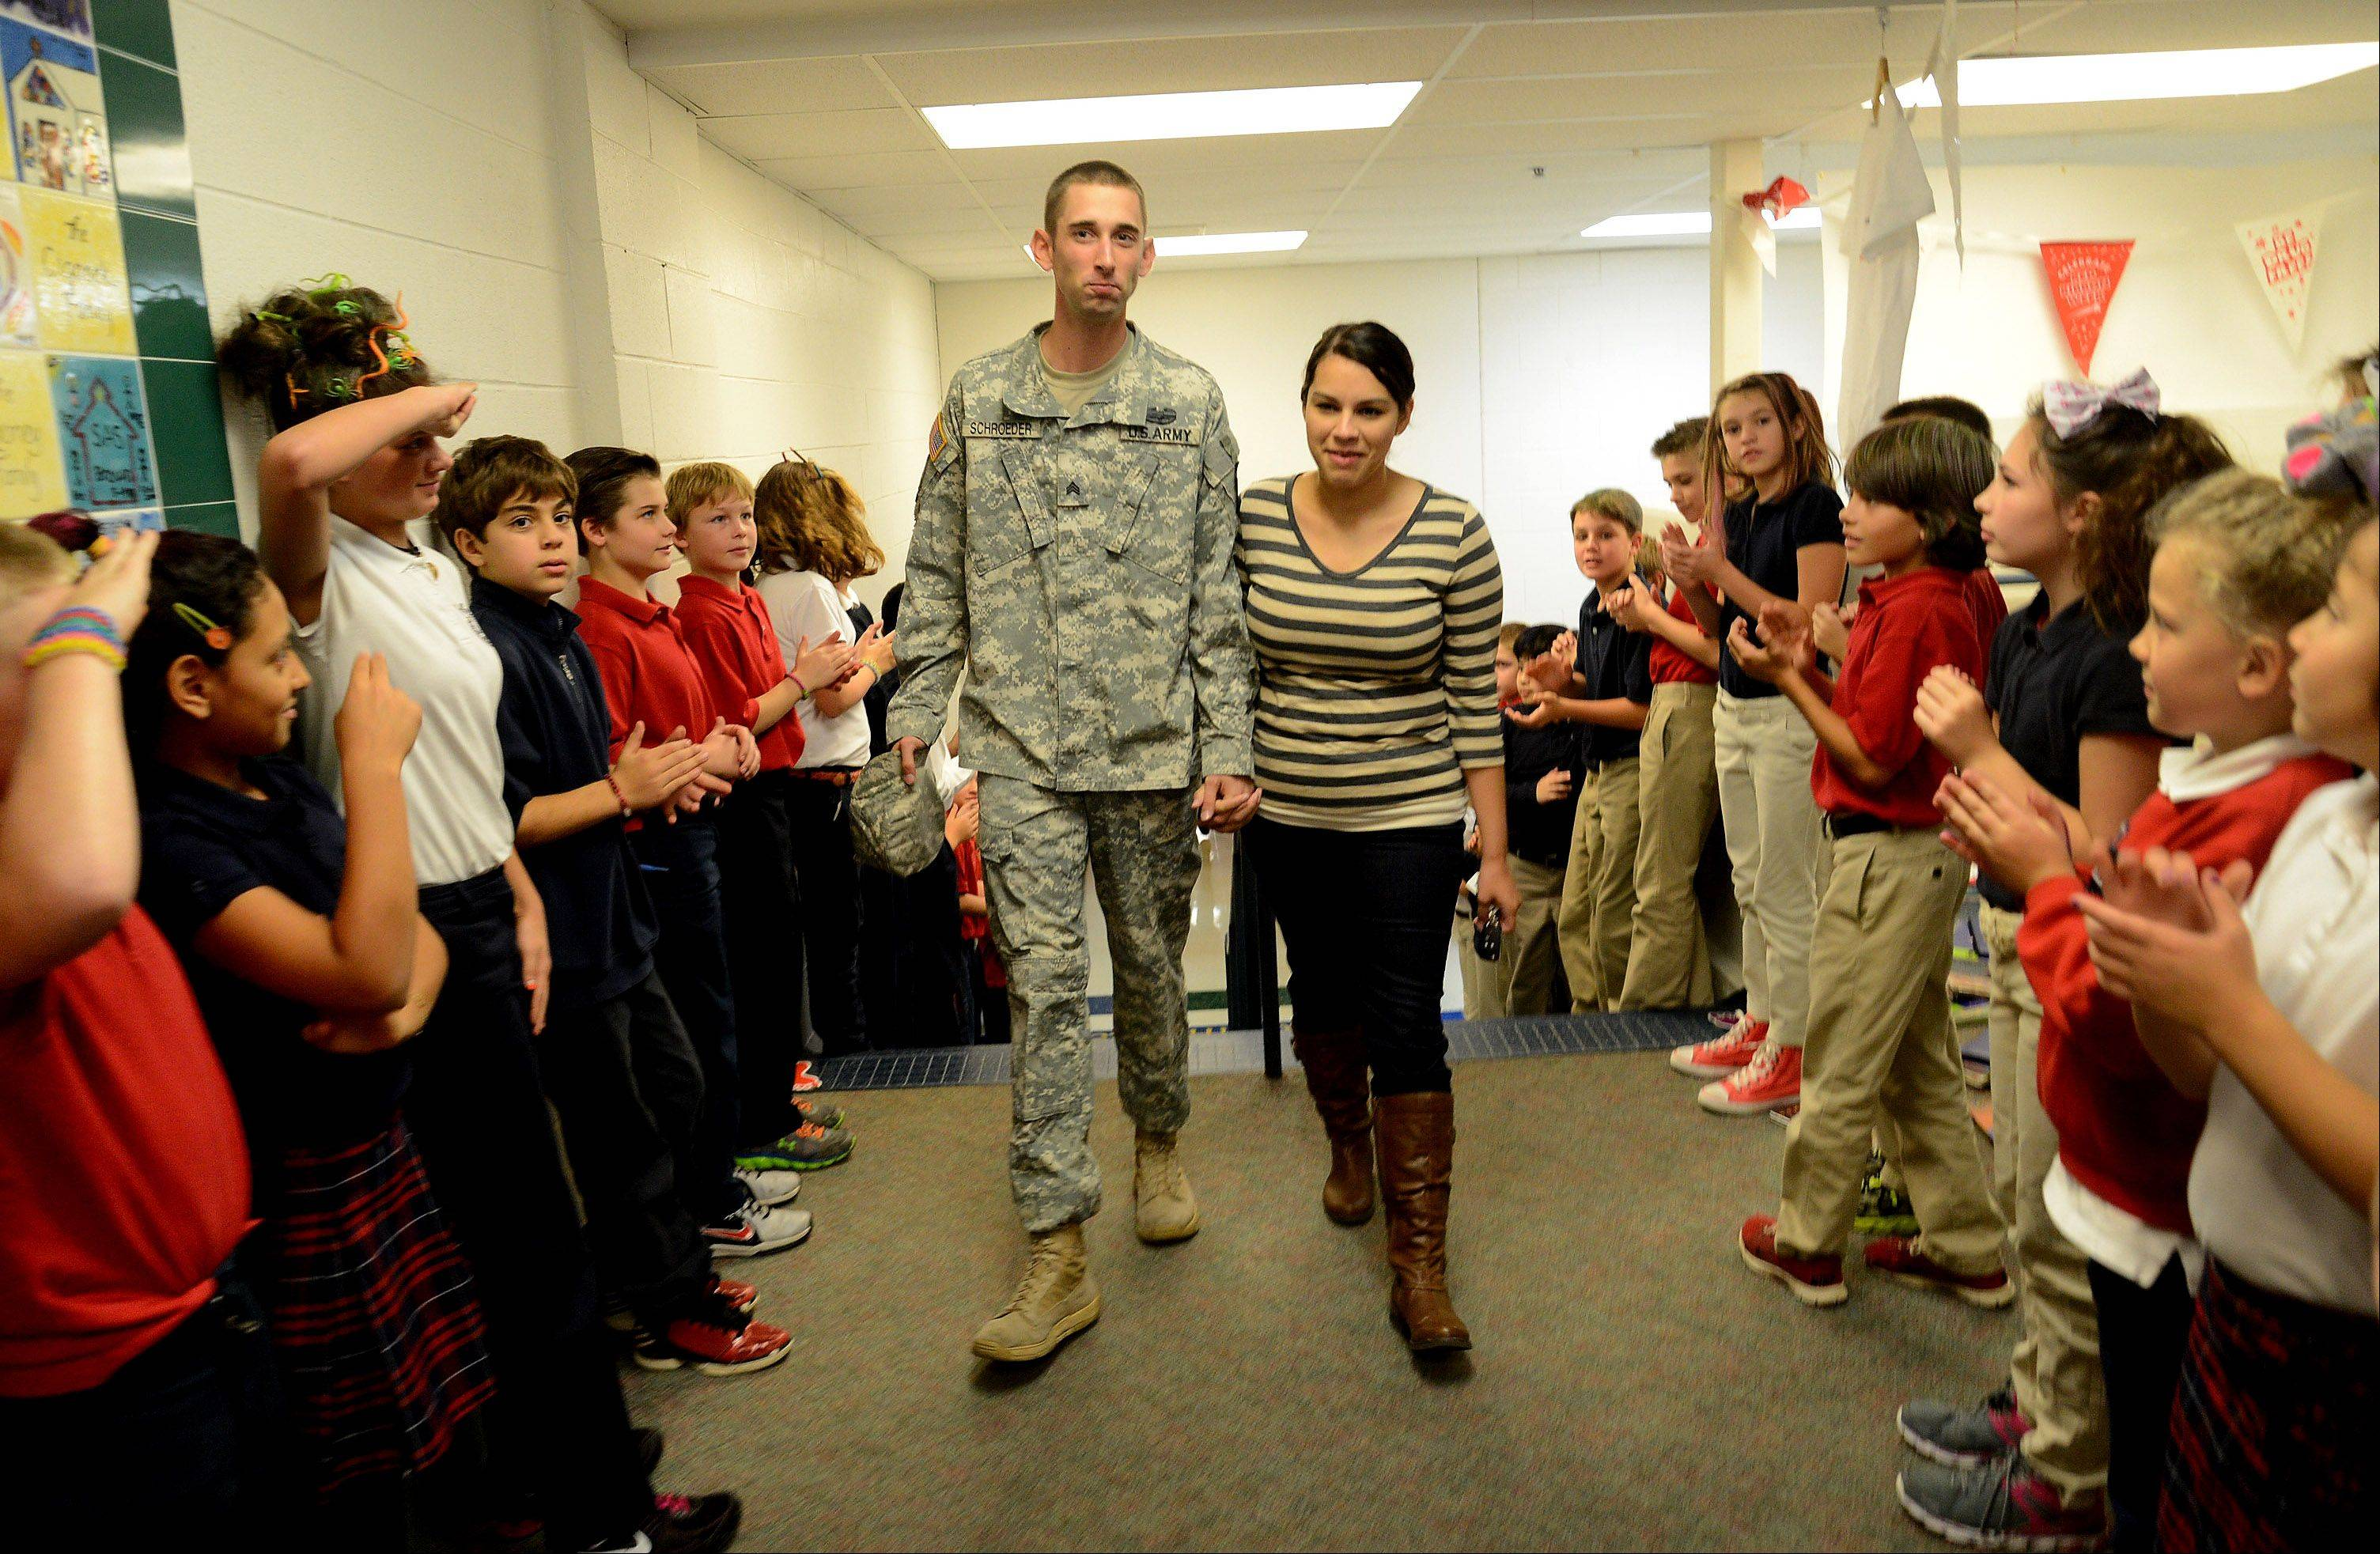 U.S. Army Sgt. Robert Schroeder of Lake Barrington received a surprise hero's welcome Wednesday at St. Anne School in Barrington. Home on a two-week leave from his assignment in South Korea, Schroeder planned on surprising his 4-year-old son William in his pre-Kindergarten class.